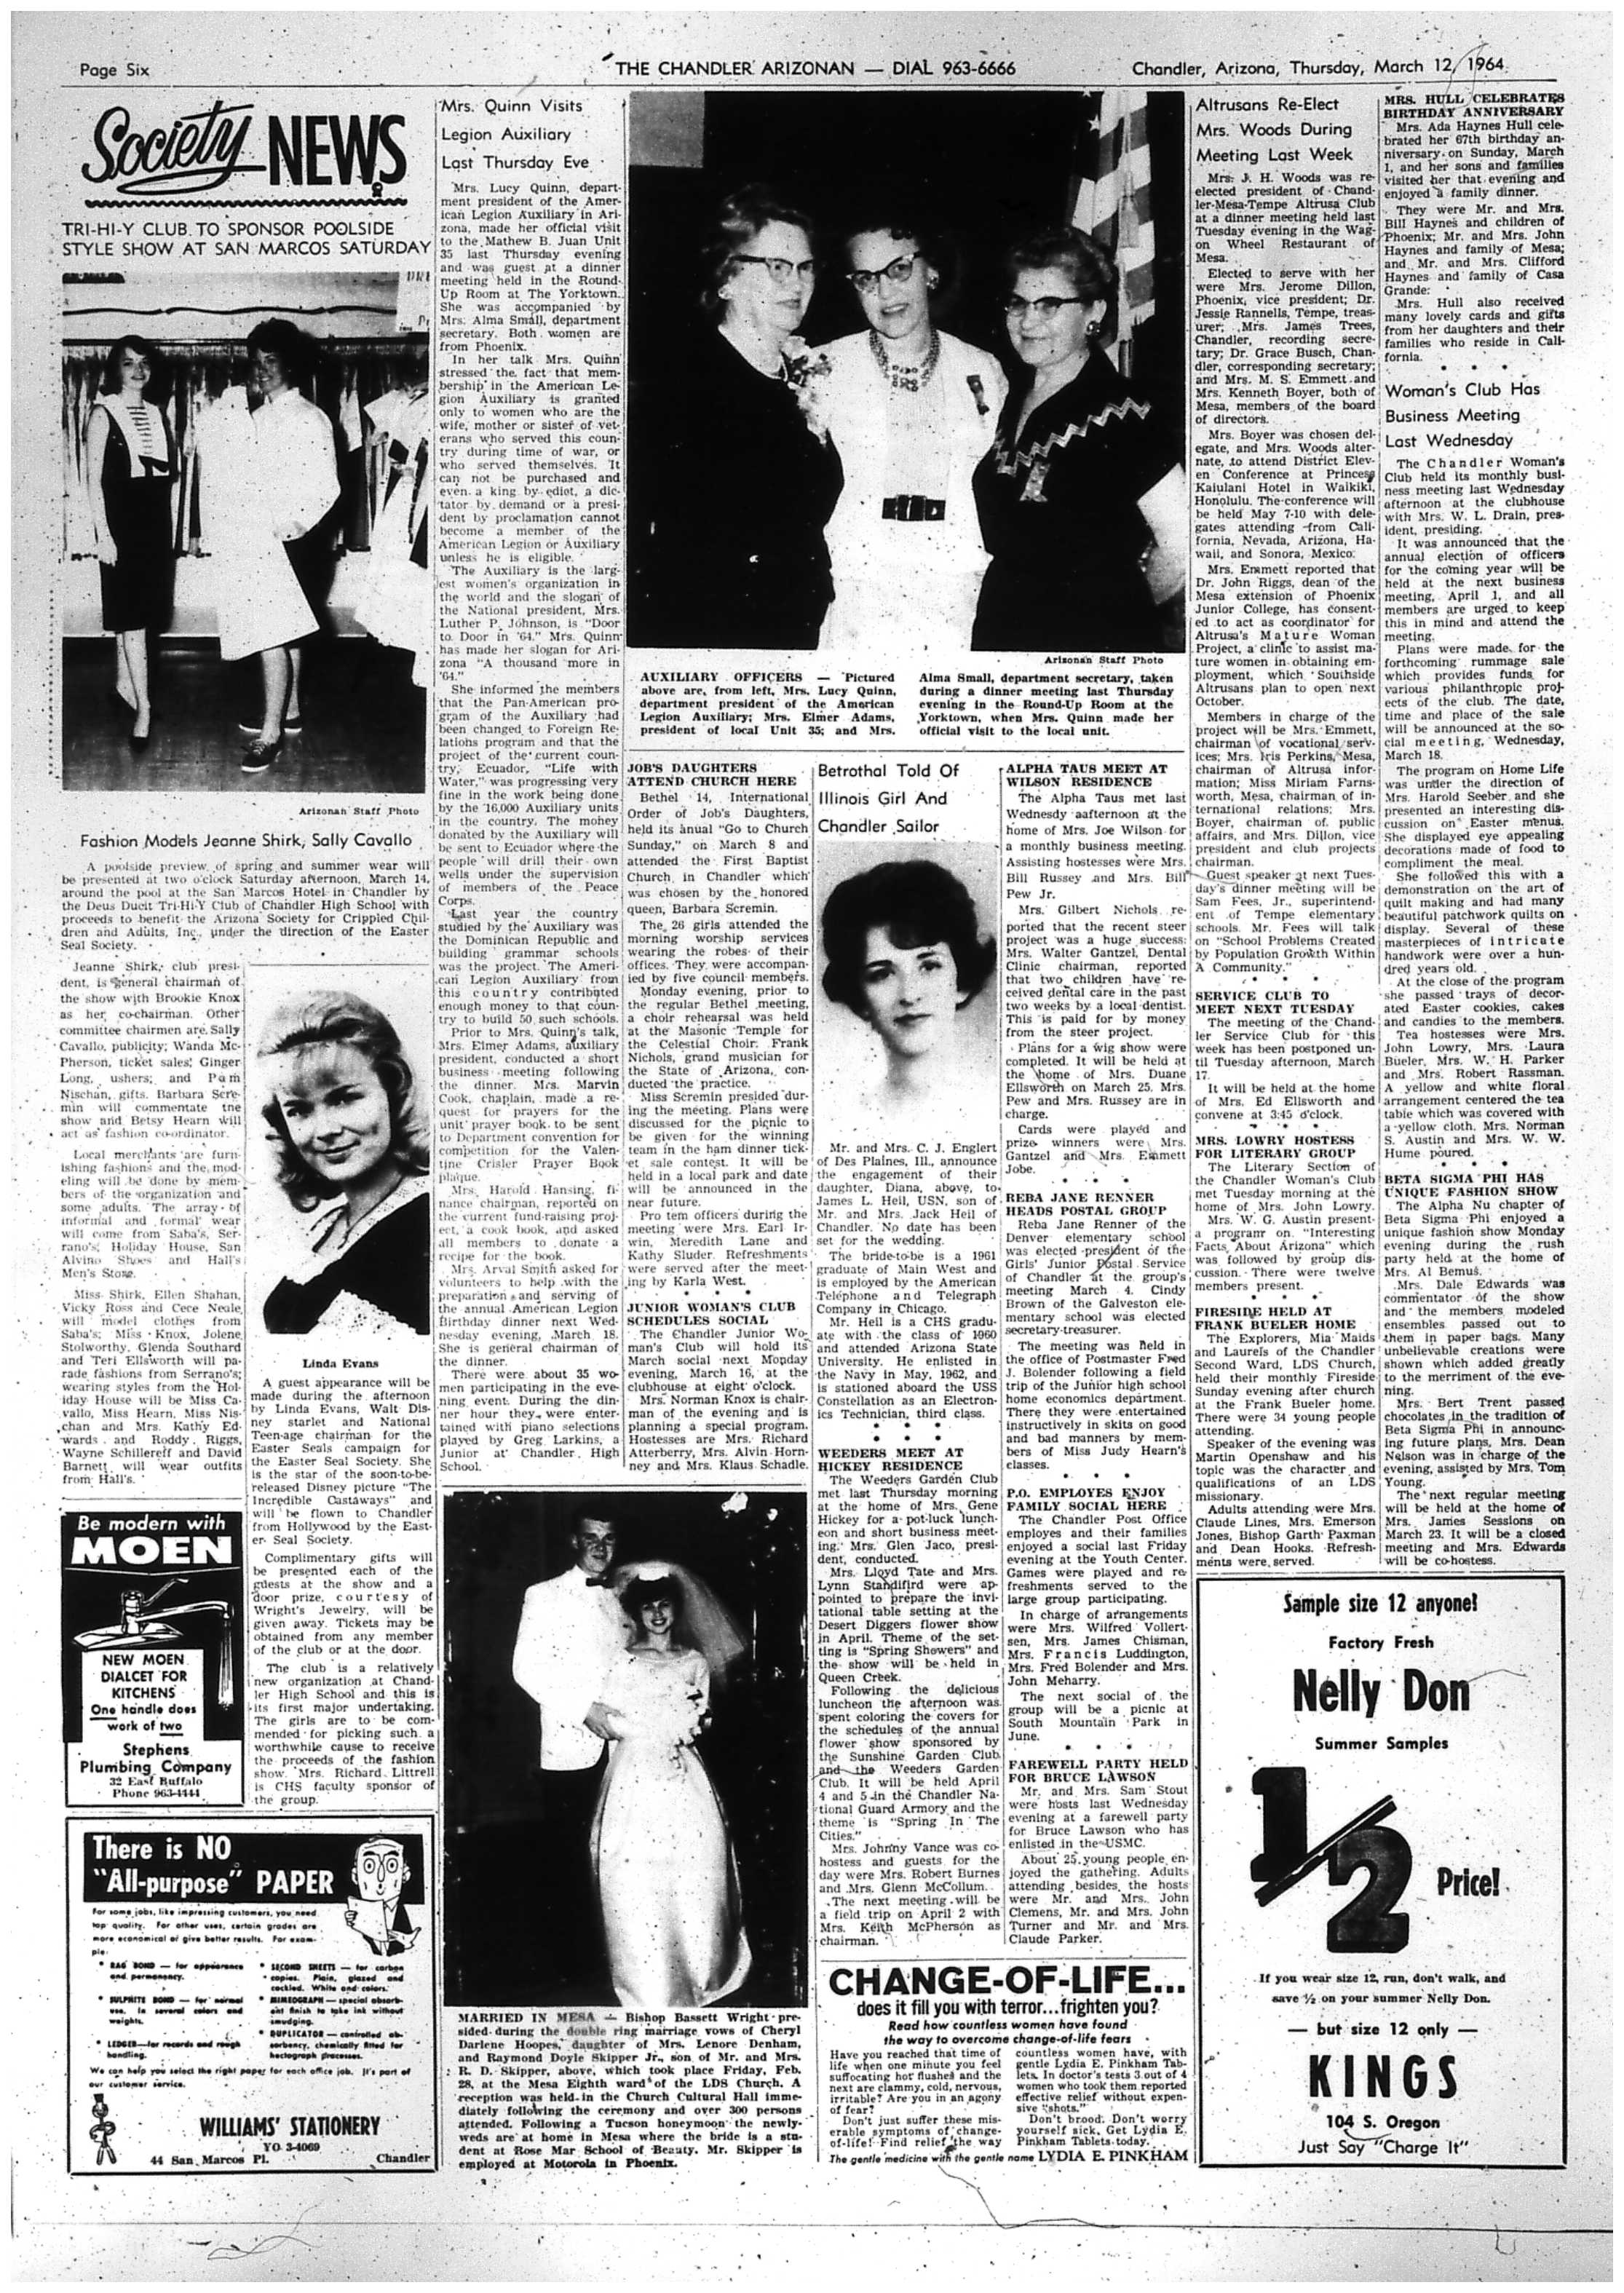 03-12-1964 - Page 6 .jpg